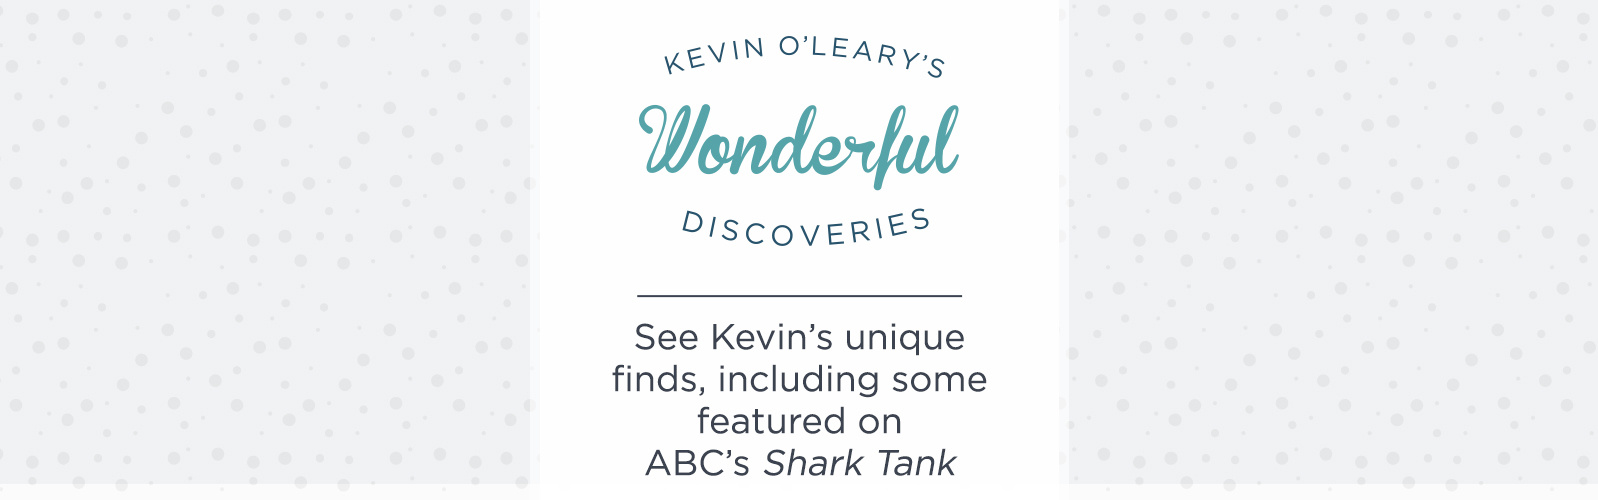 Kevin O'Leary's Wonderful Discoveries.  See Kevin's unique finds, including some featured on ABC's Shark Tank